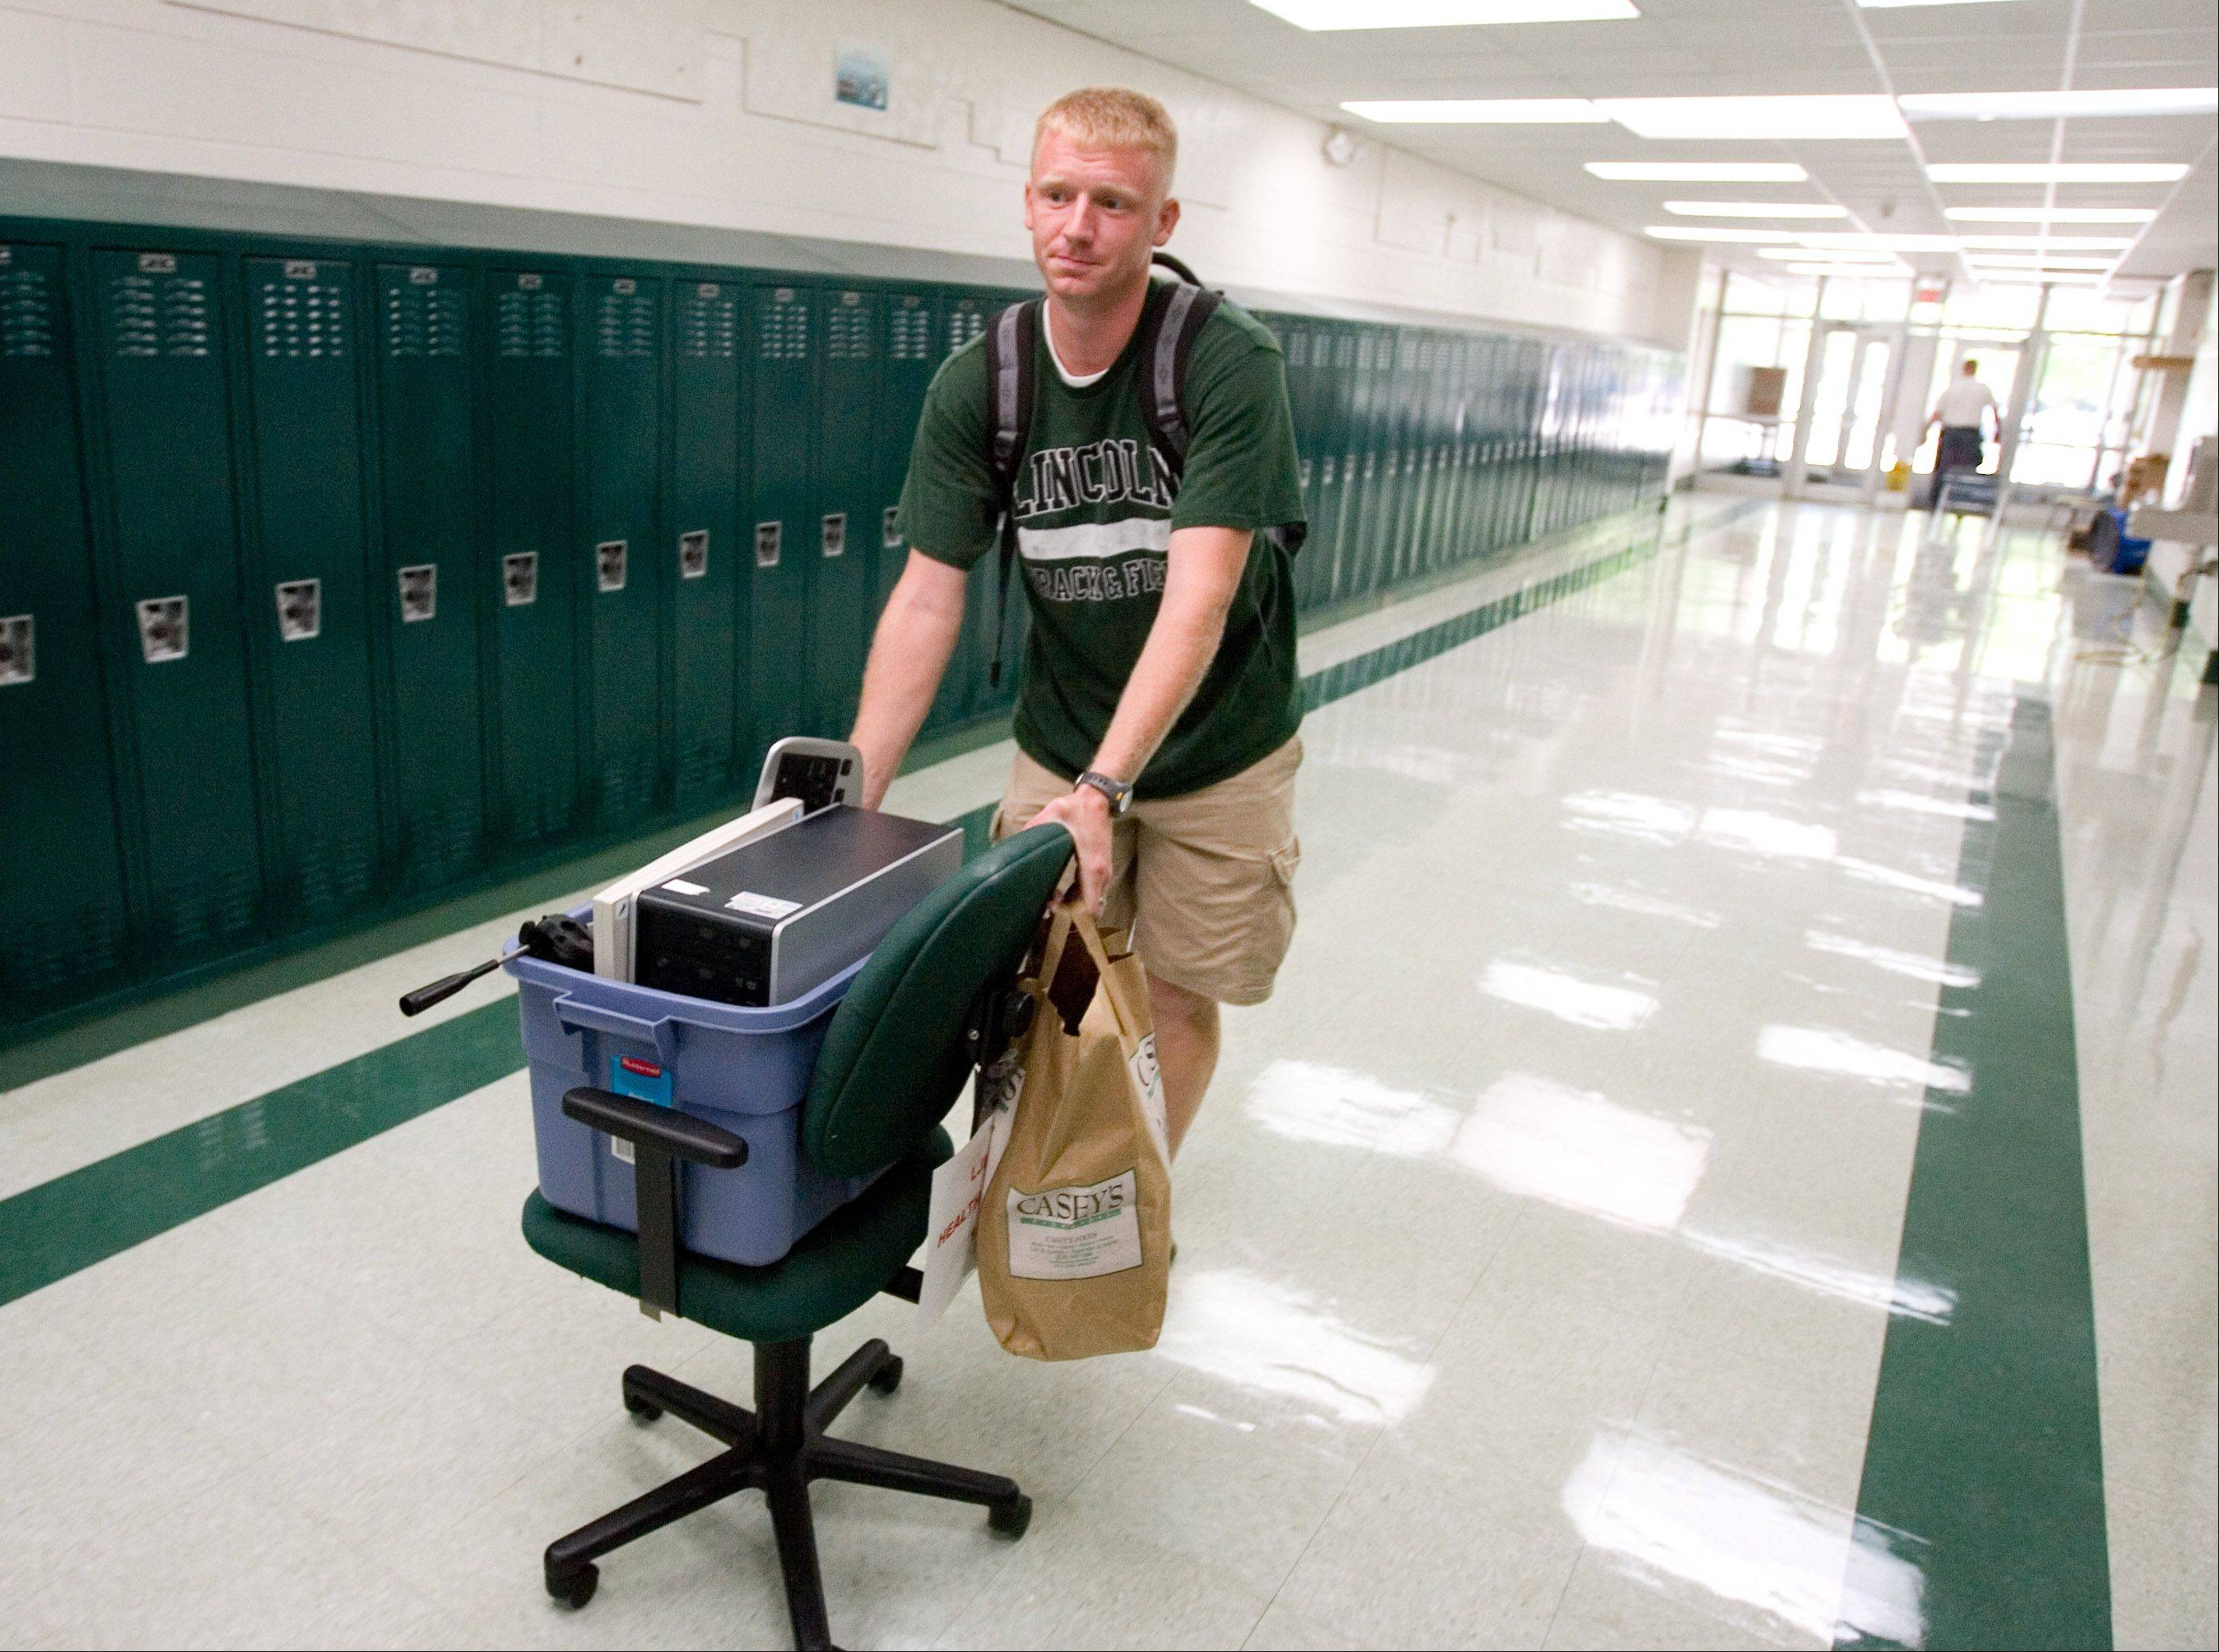 Josh Stumpenhorst, a big believer in the use of technology as a learning tool, moves equipment into his sixth-grade classroom at Lincoln Junior High in Naperville to get ready for the school year.